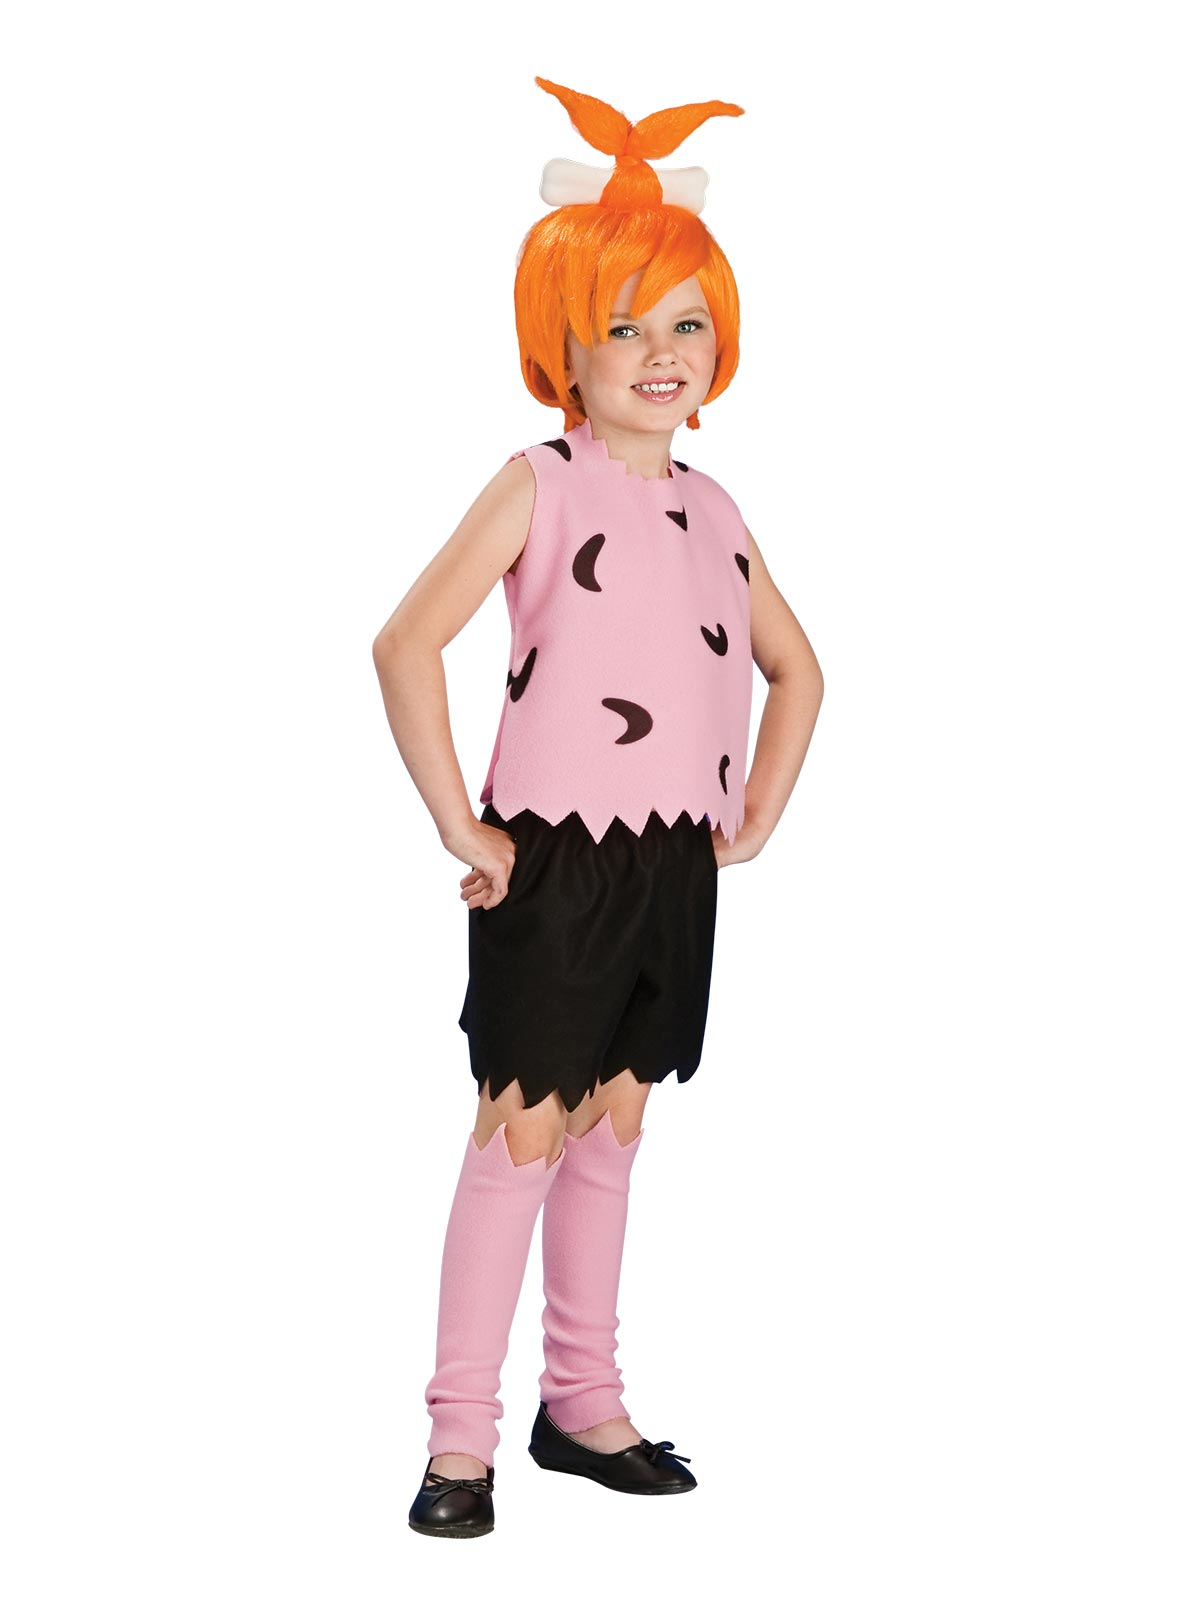 Pebbles The Flintstones Child Costume - Buy Online Only